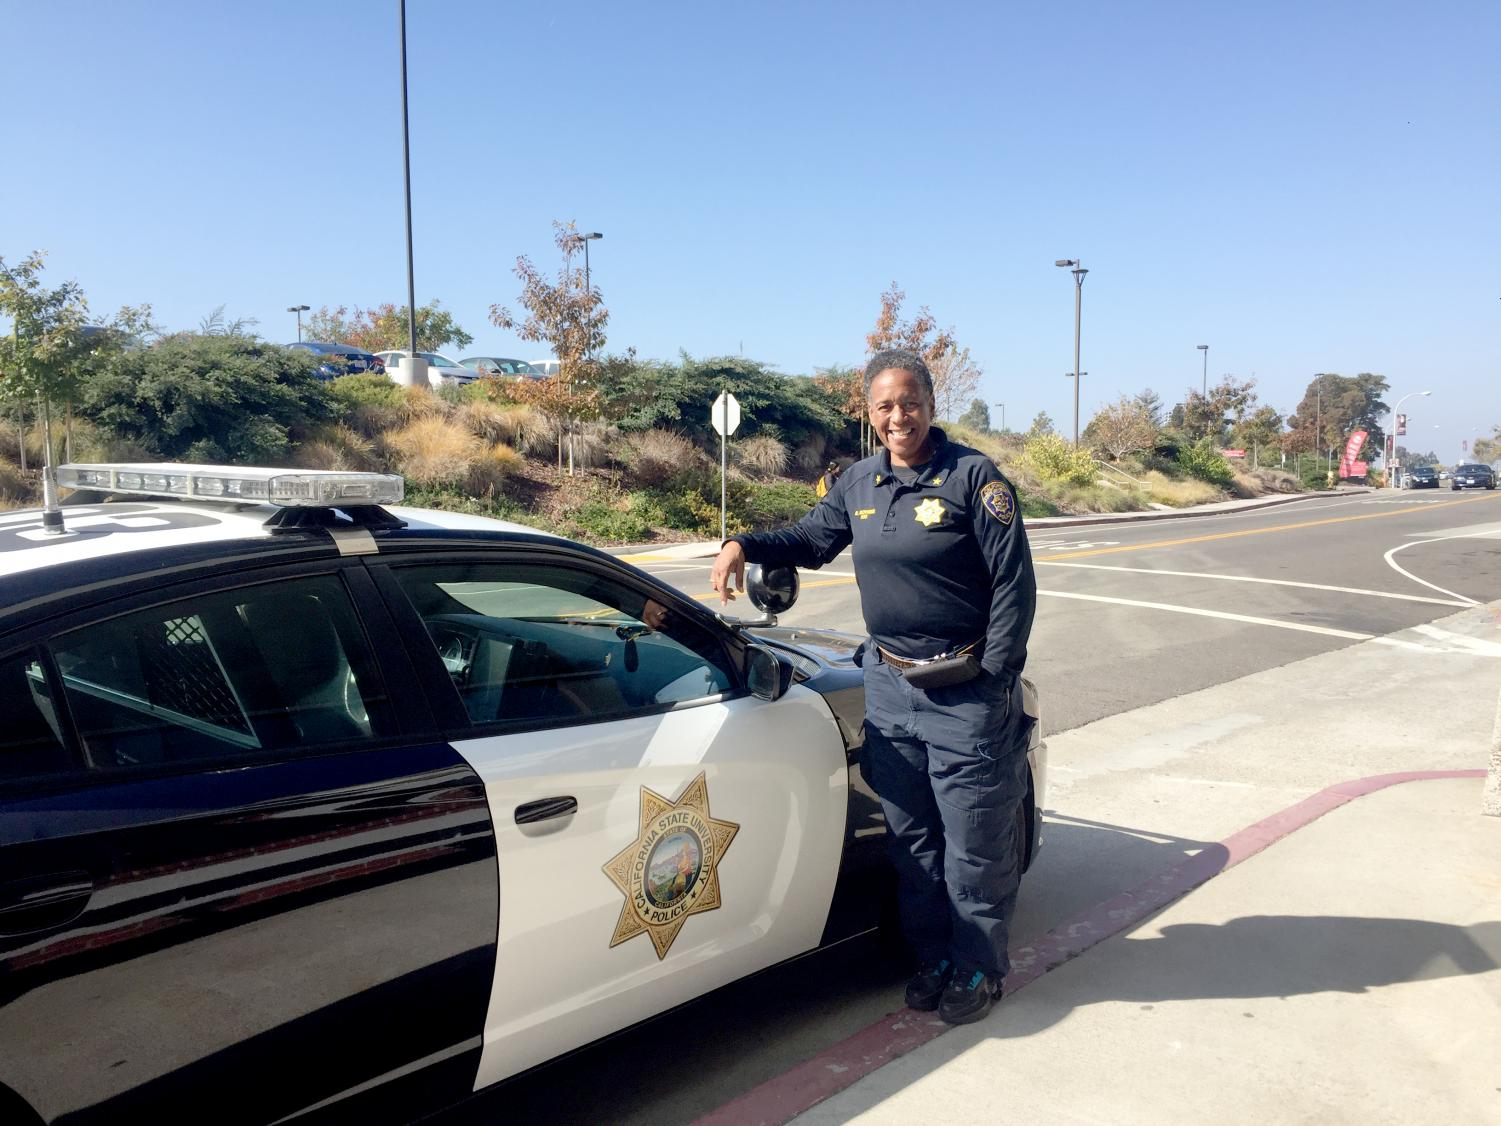 CSUEB's Chief of Police Sheryl Boykins photographed next to a police car.